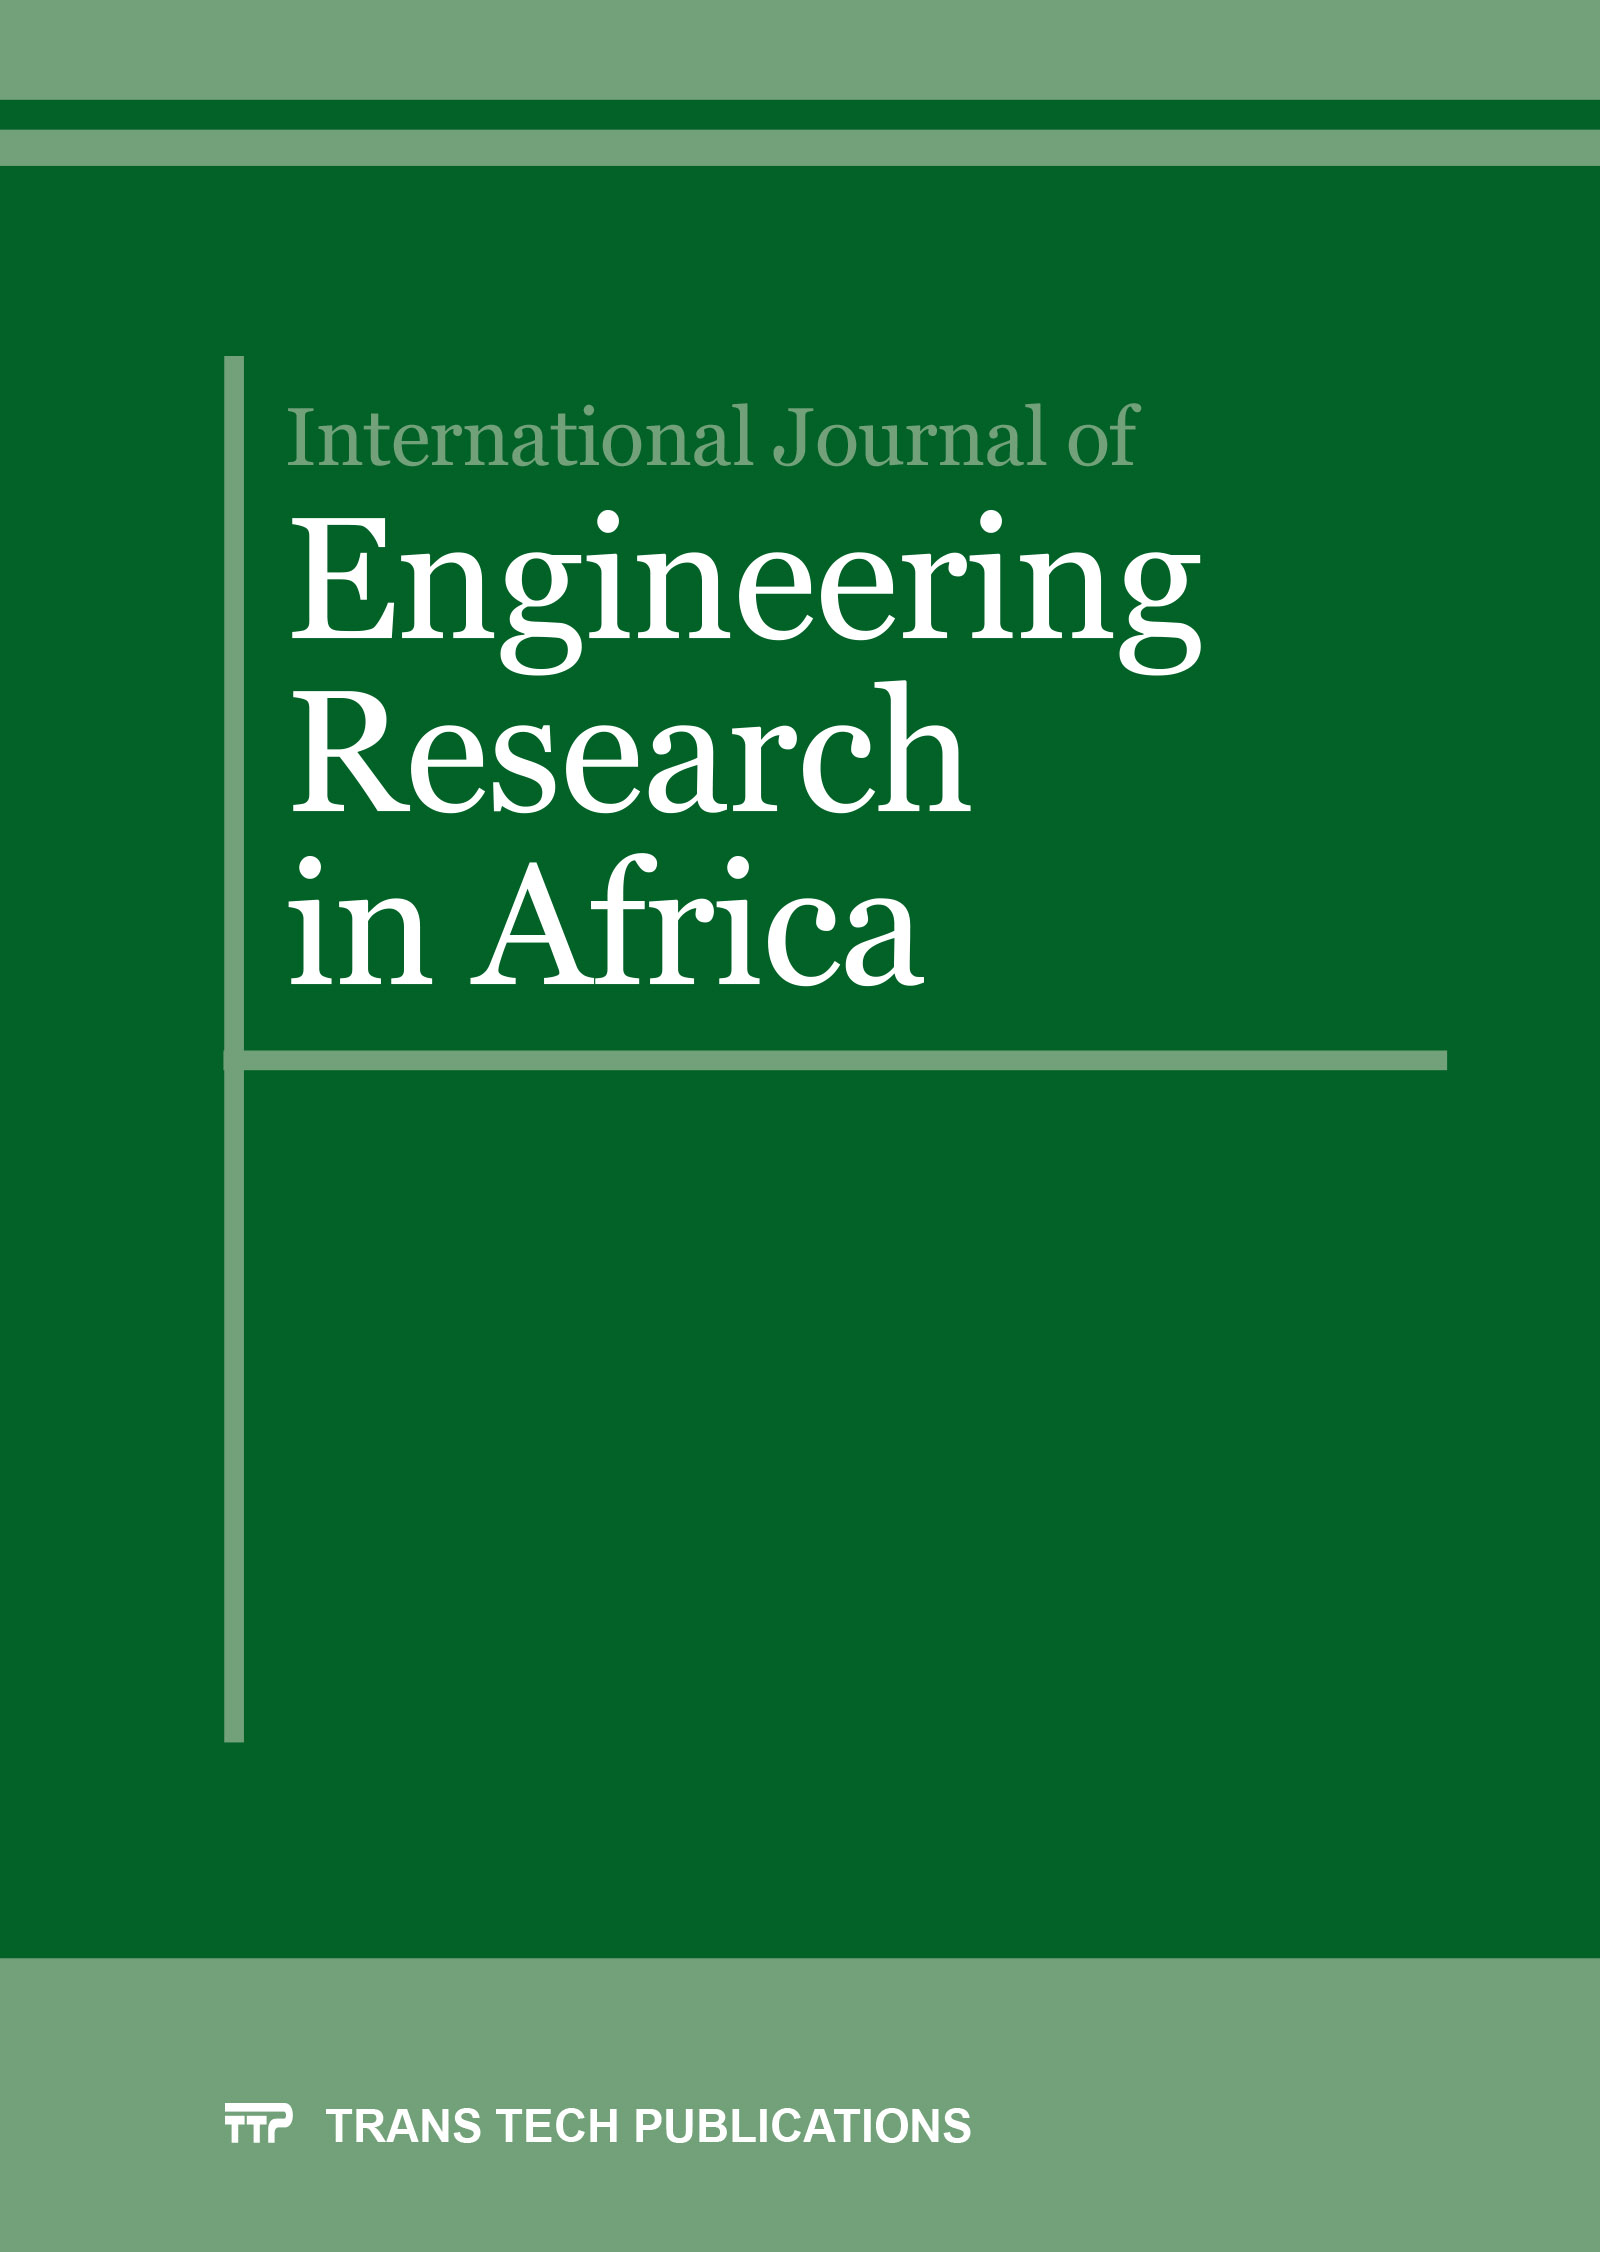 International Journal of Engineering Research in Africa Vol. 27